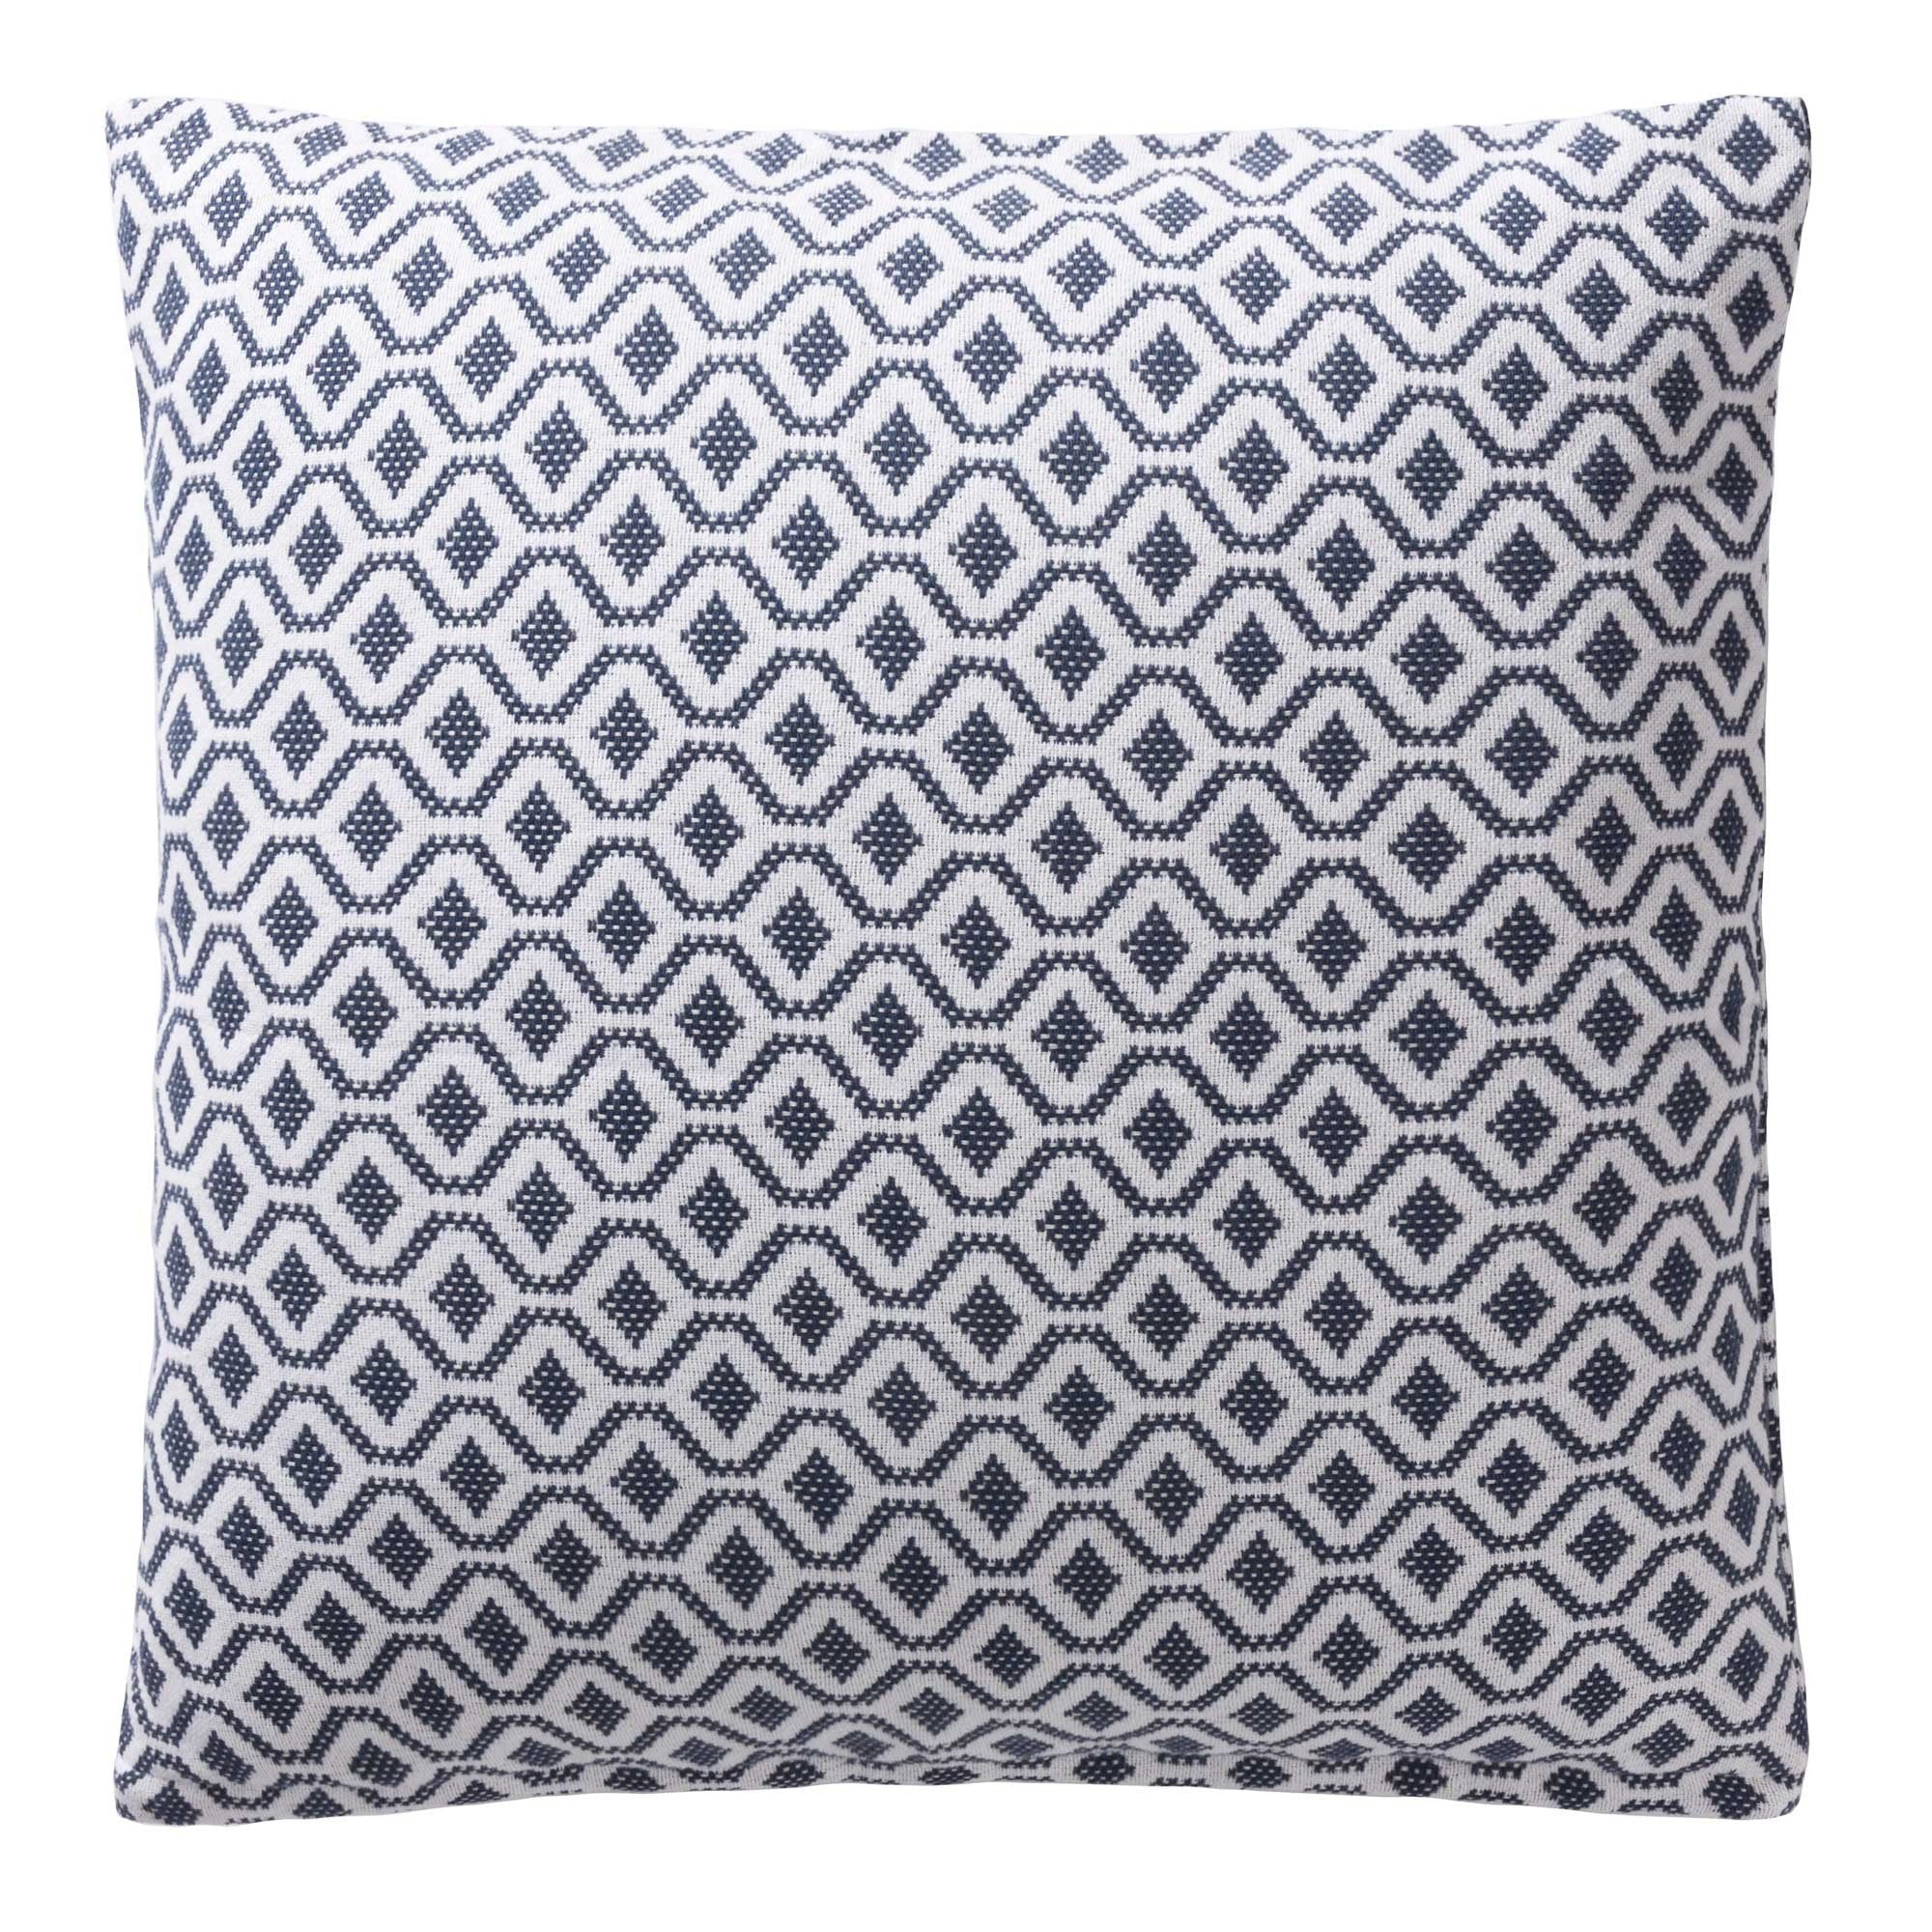 Viana Cushion [Blue grey/White]